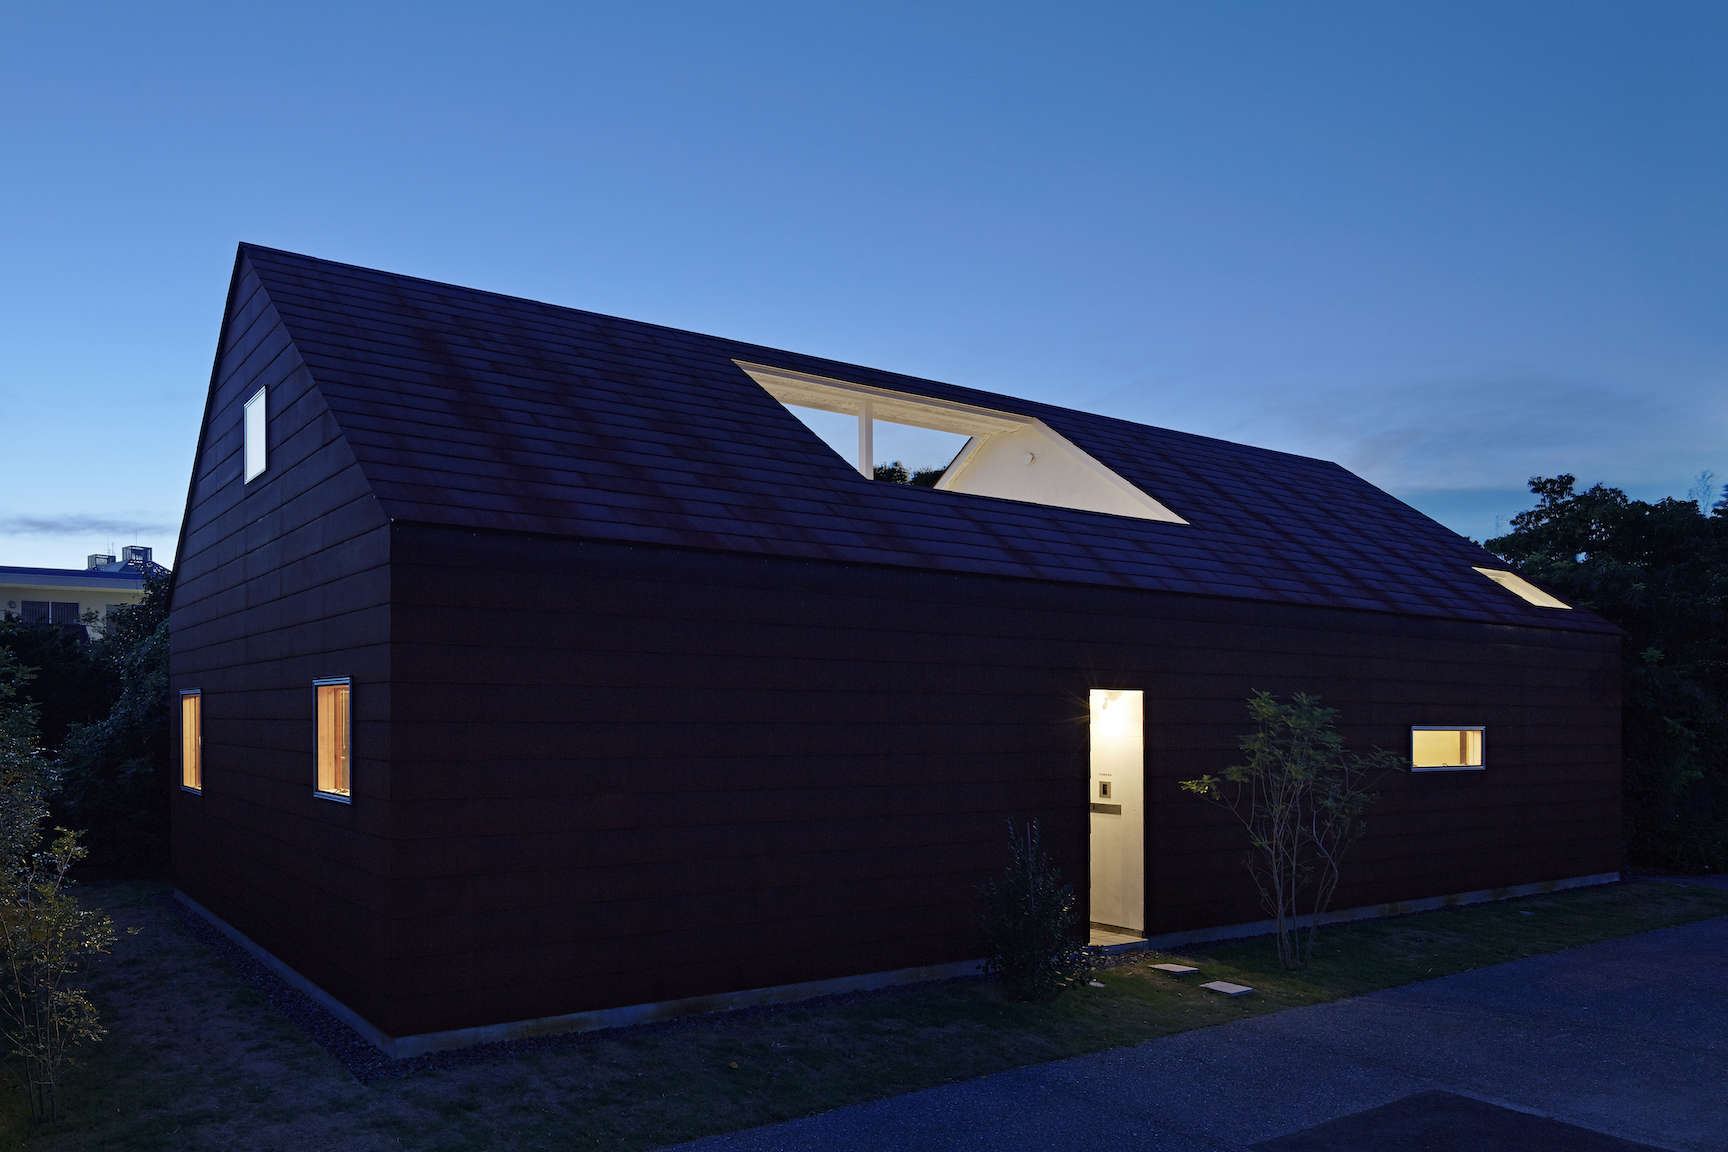 sabi, a surfers' house in chiba, japan, designed by no. 555 architects. the ext 22